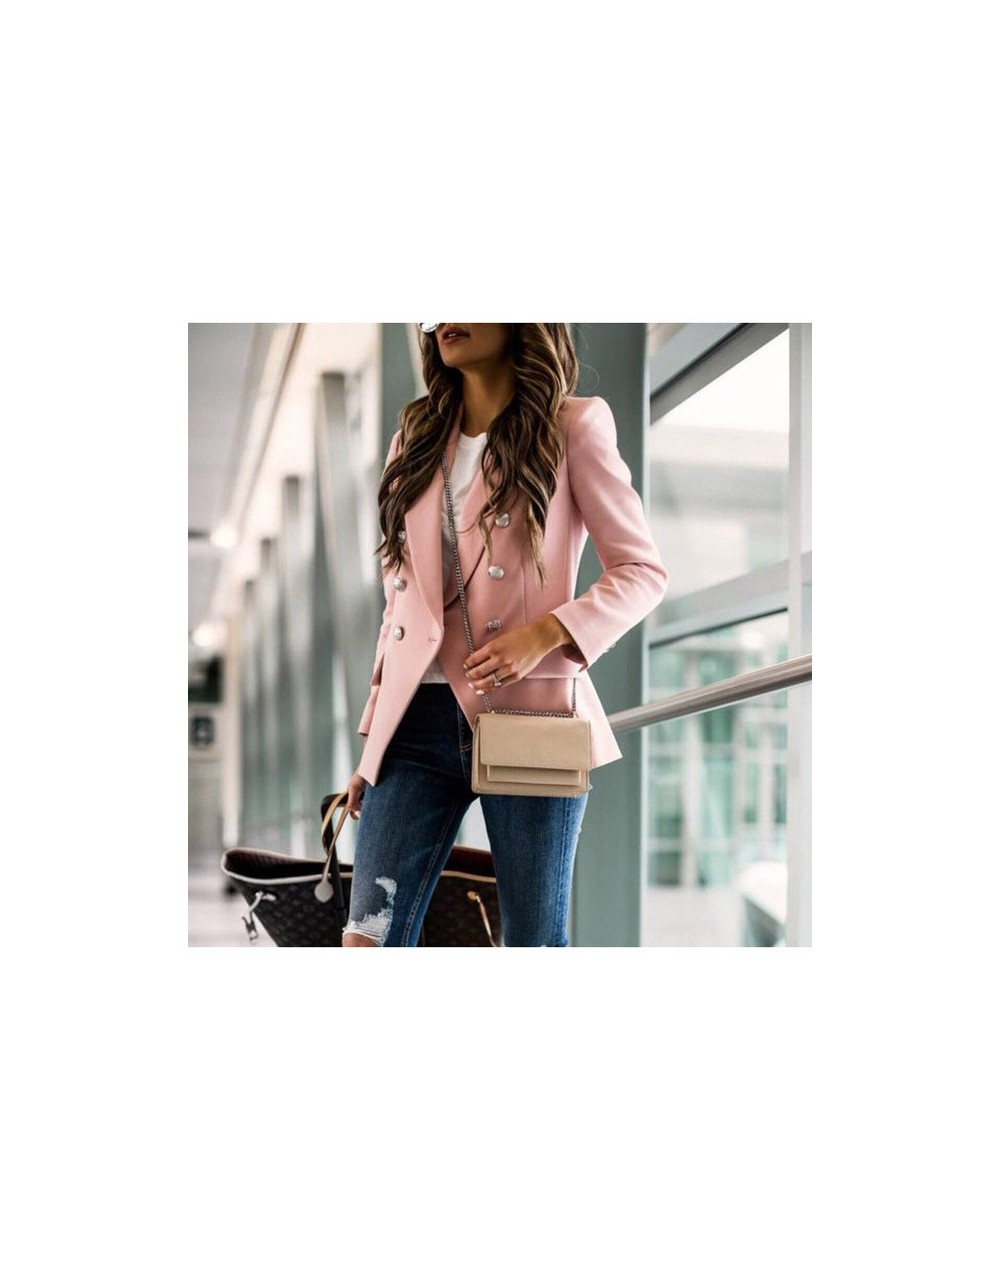 Women Autumn Winter Blazers Long Sleeve Classic Office Small Coats Ladies Double Breasted Pink Clothing Work Suit Jackets - ...